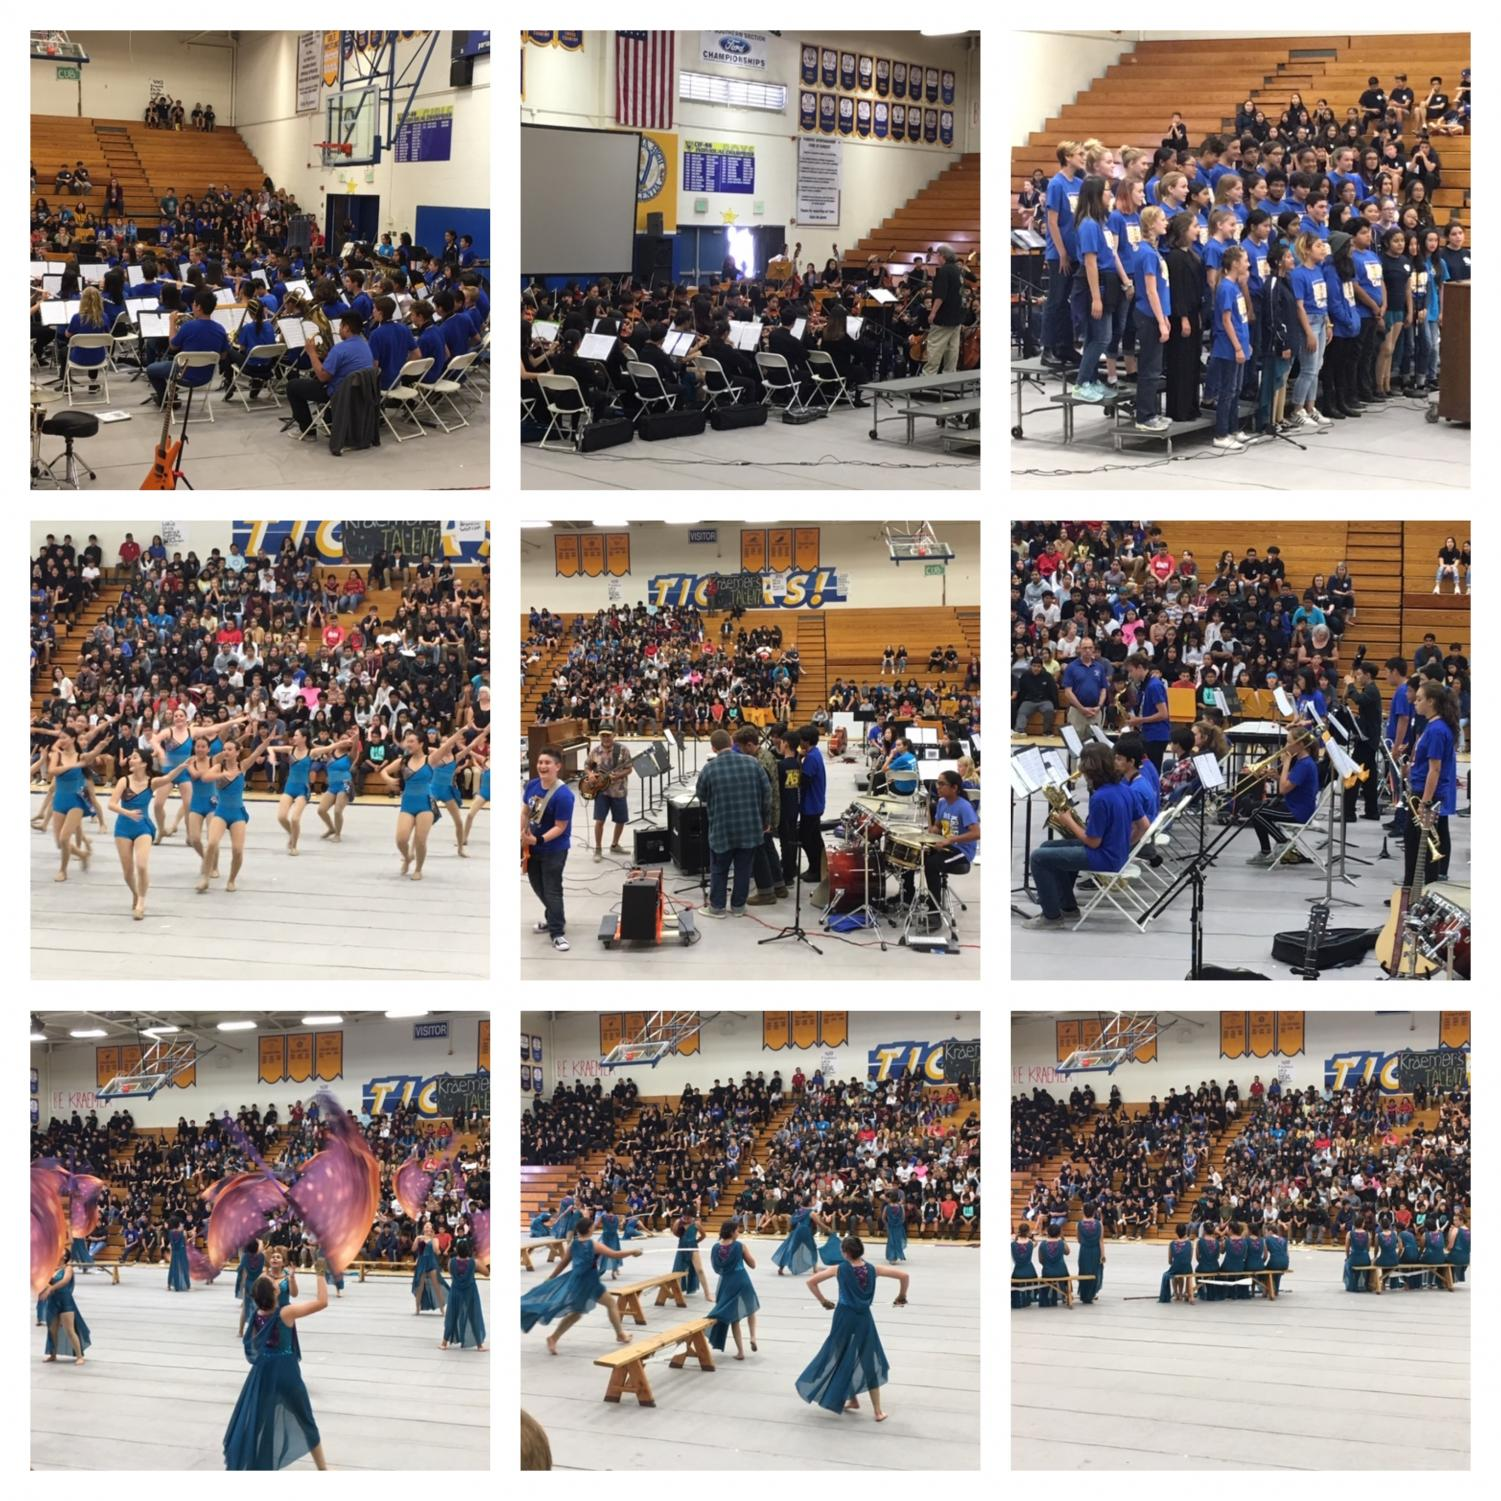 A collection of photos from the performance assembly